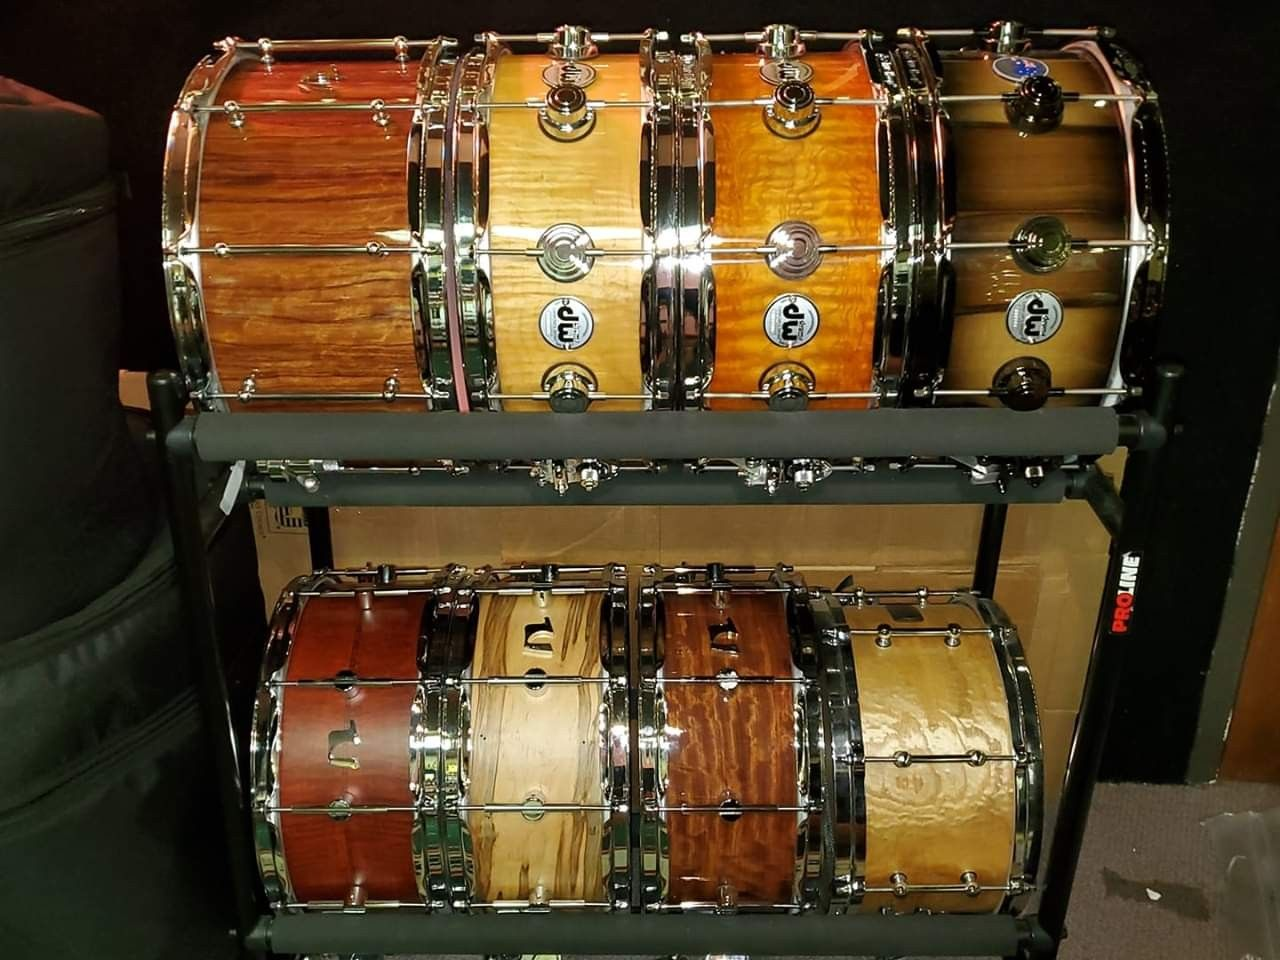 Pin by Terry Nugent on DW Drums in 2020   Dw drums, Drums